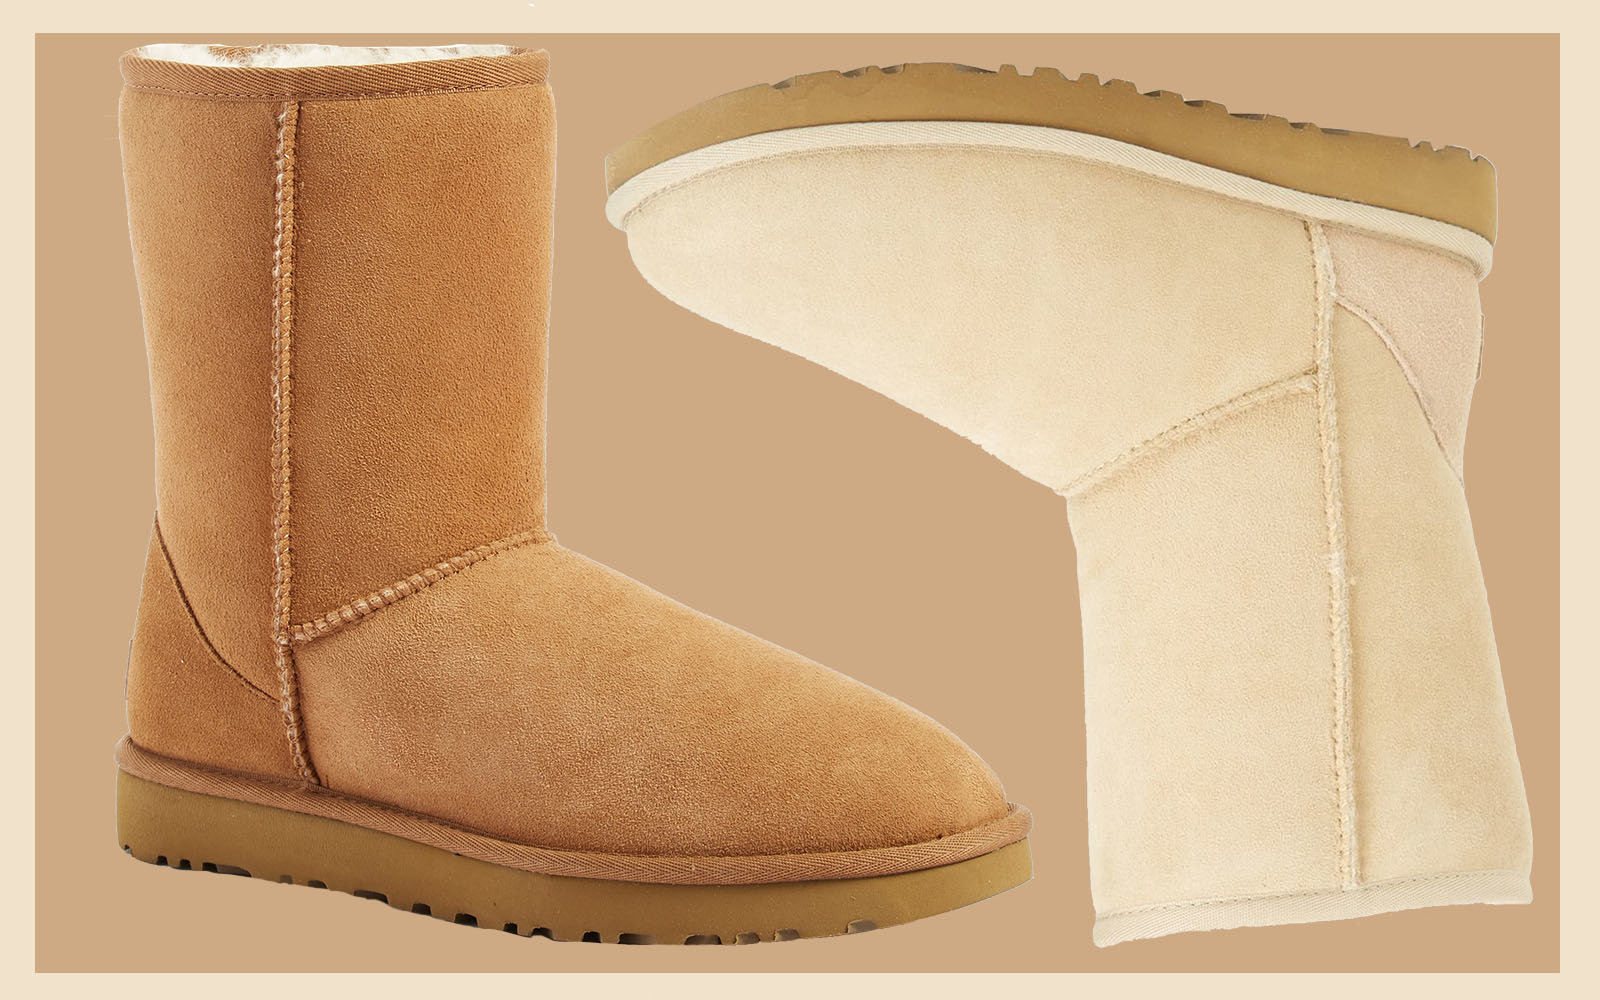 A Review of All the Best UGG's | Boots, Ugg boots outfit, Uggs